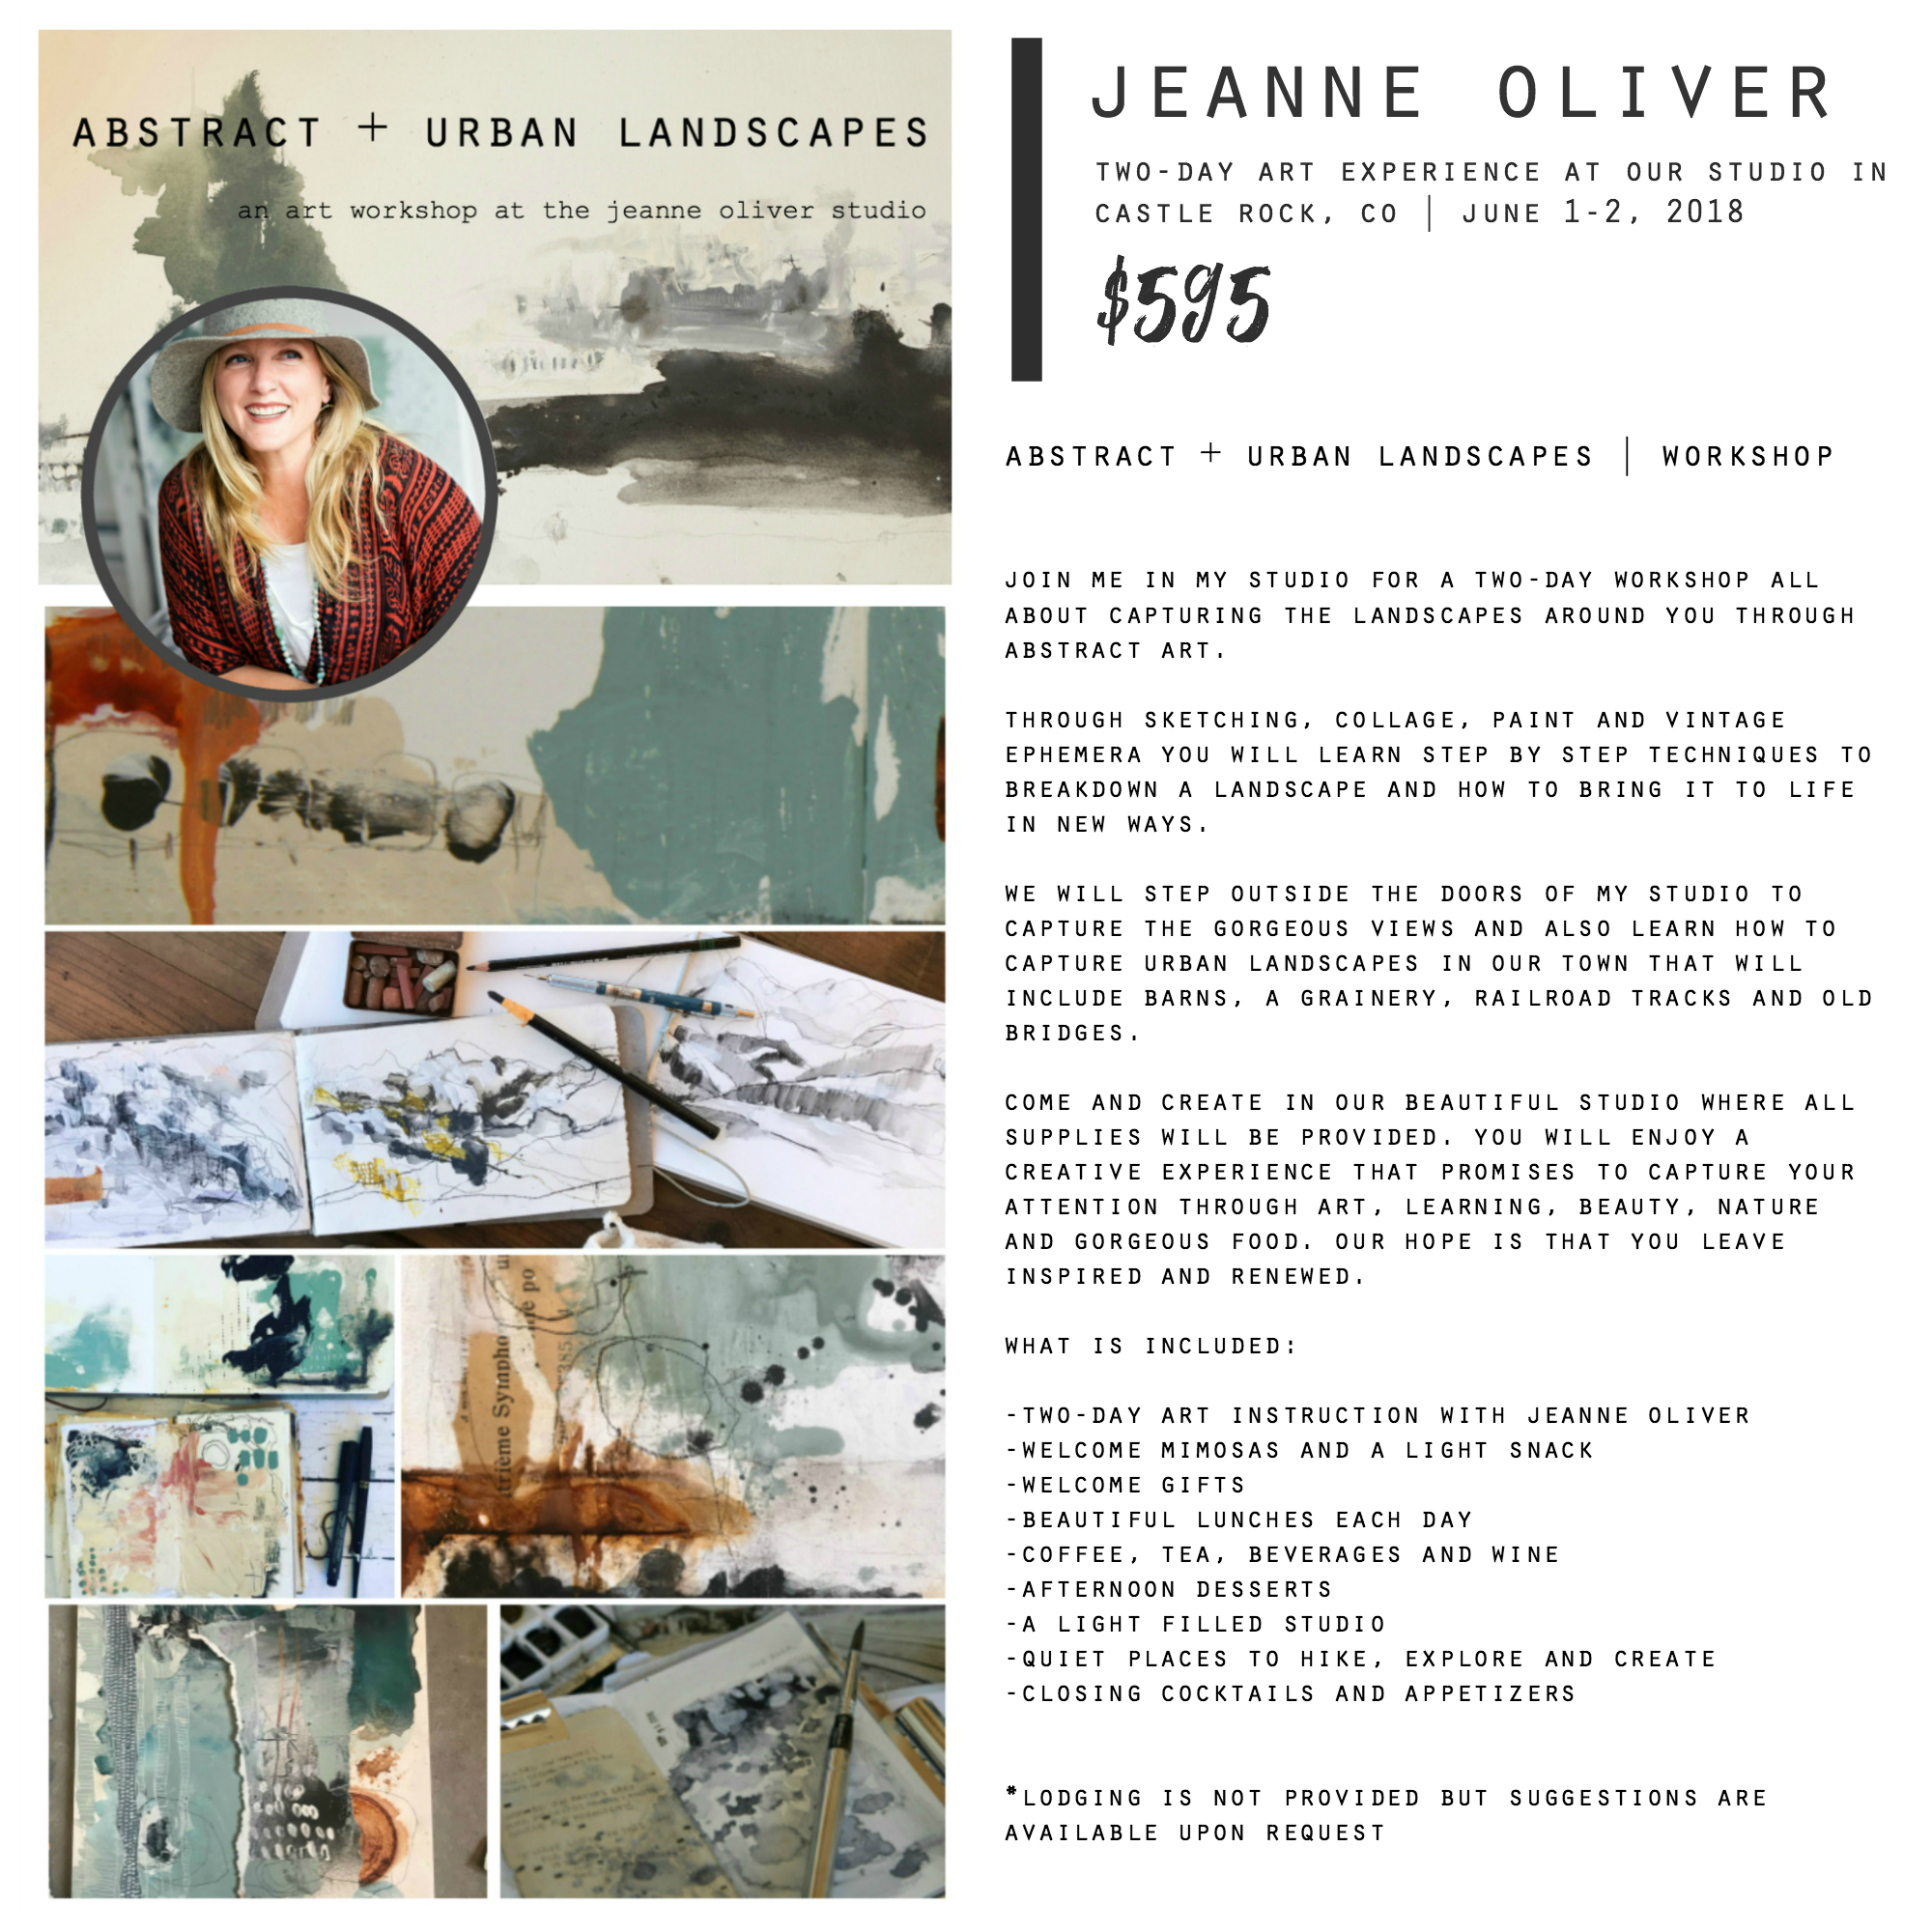 Abstract + Urban Landscapes with Jeanne Oliver